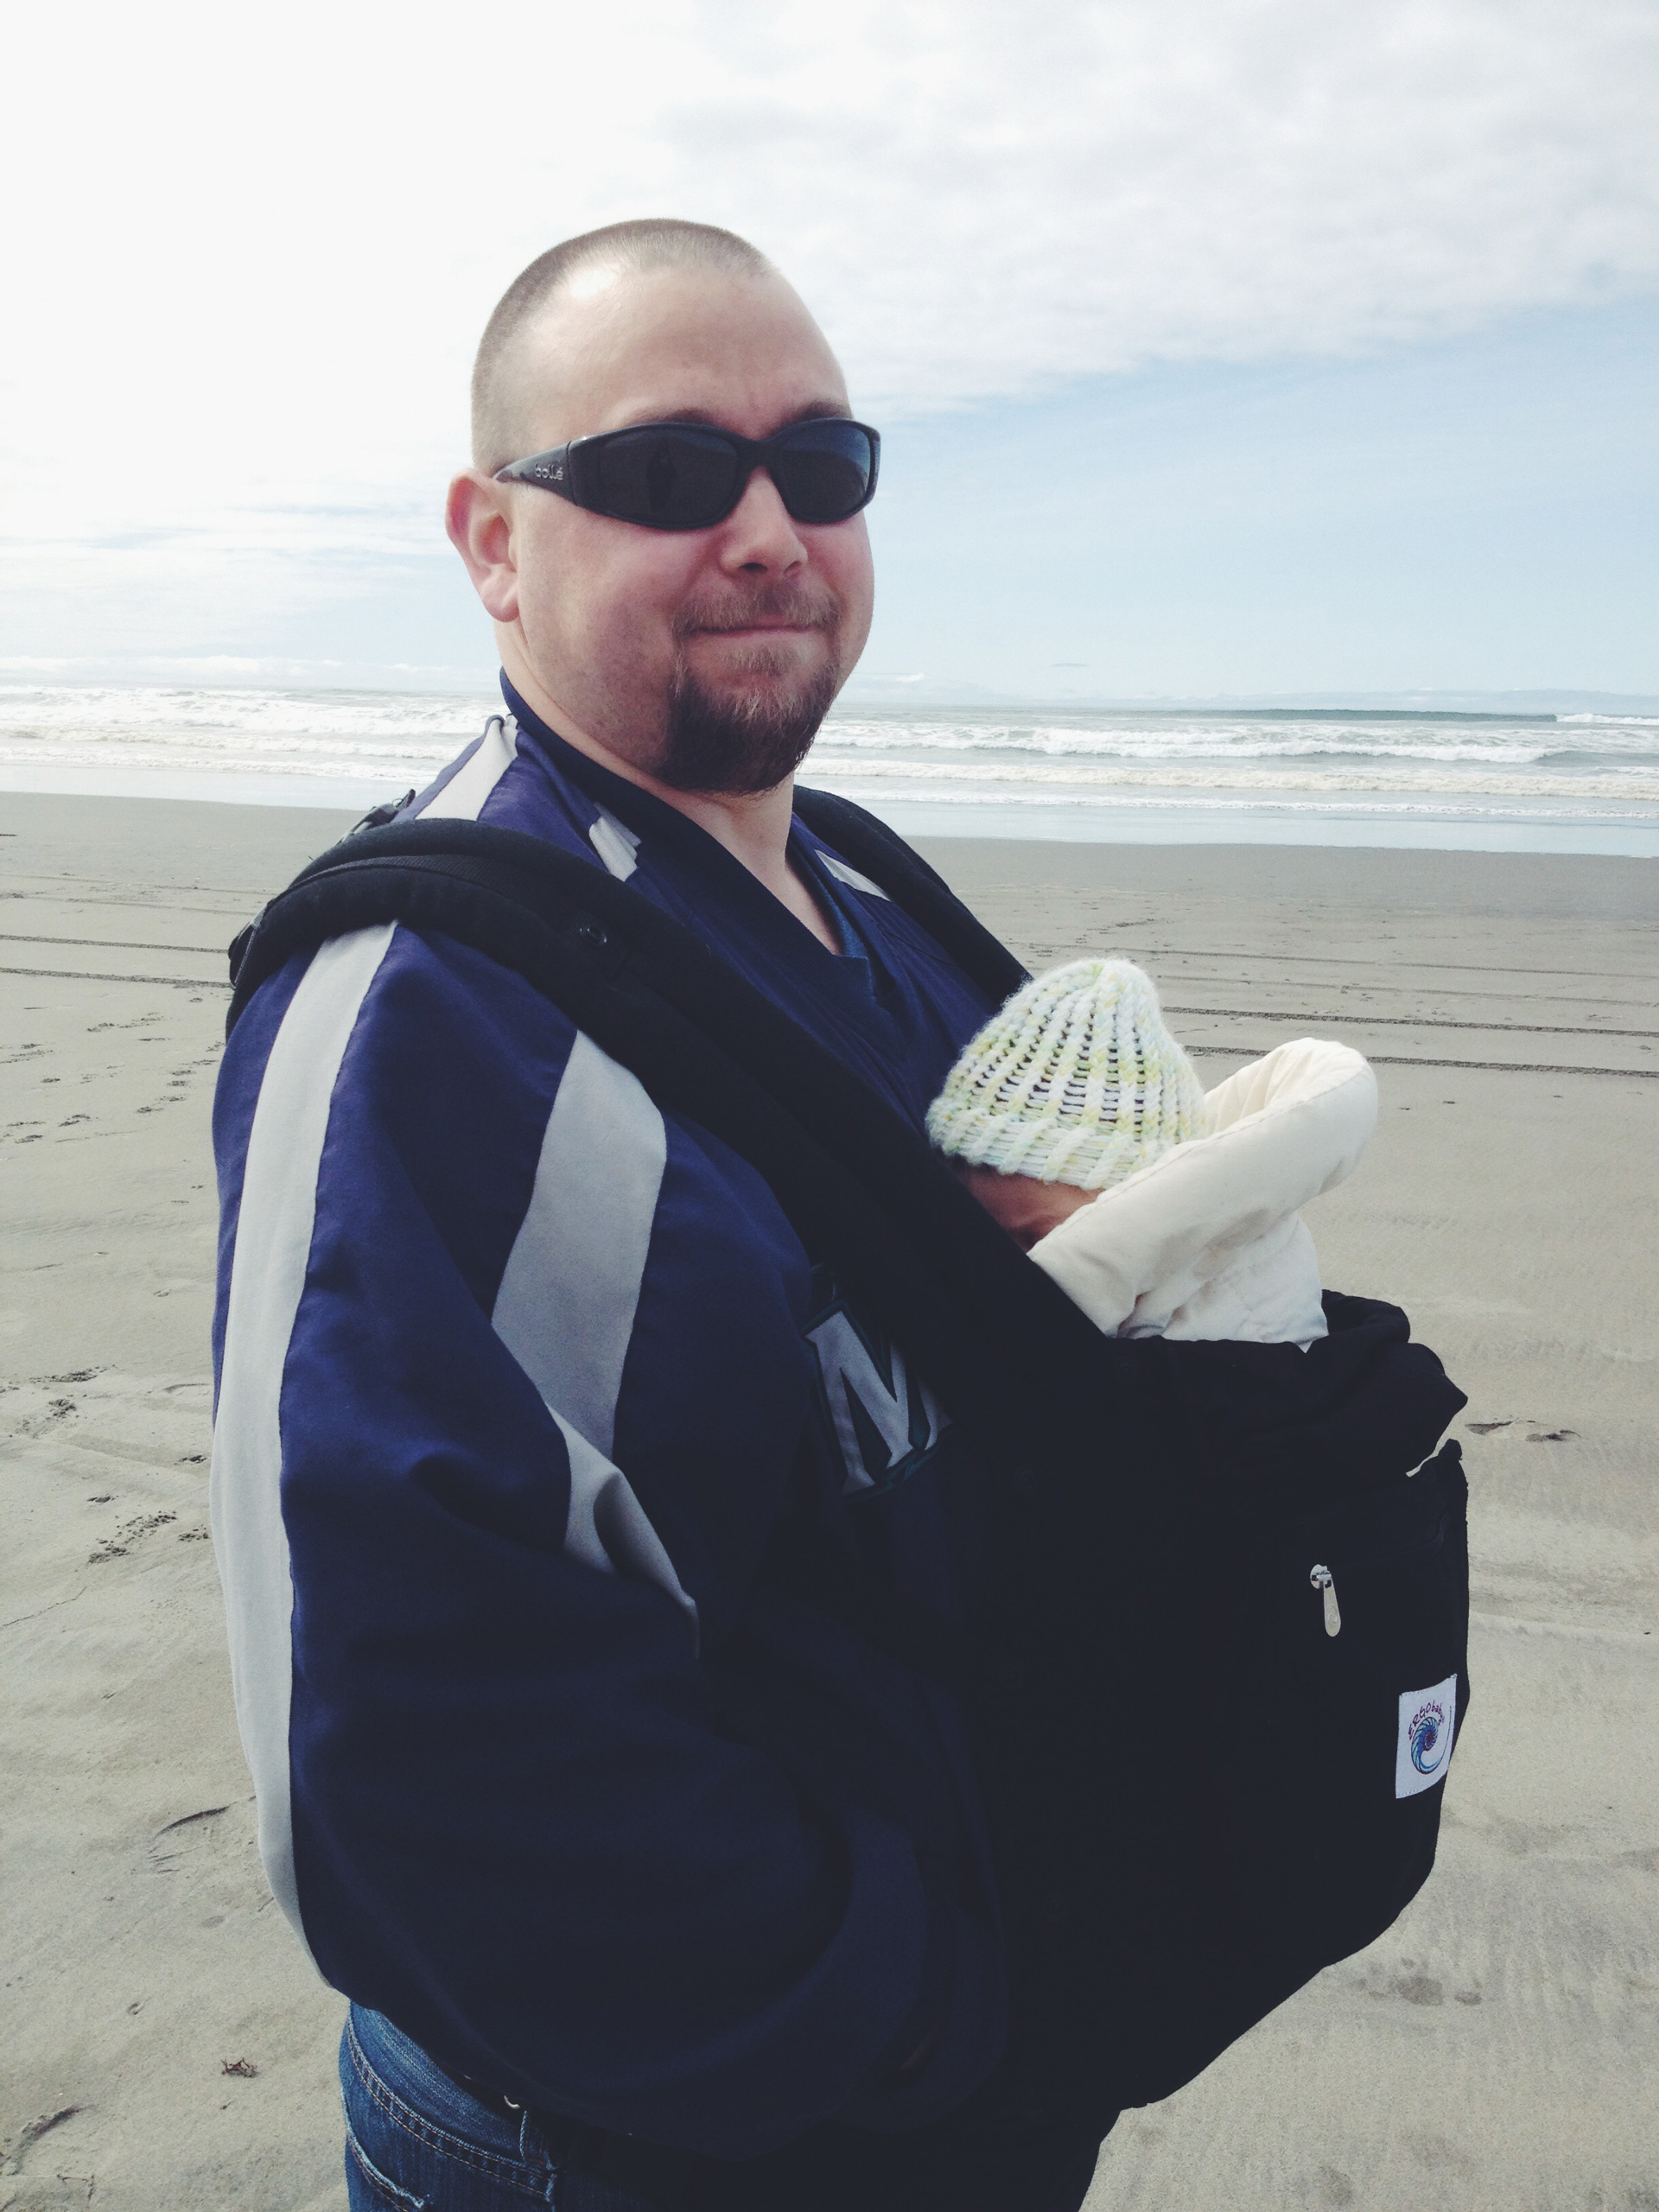 Dads keep you warm at the beach | Sheknows.com